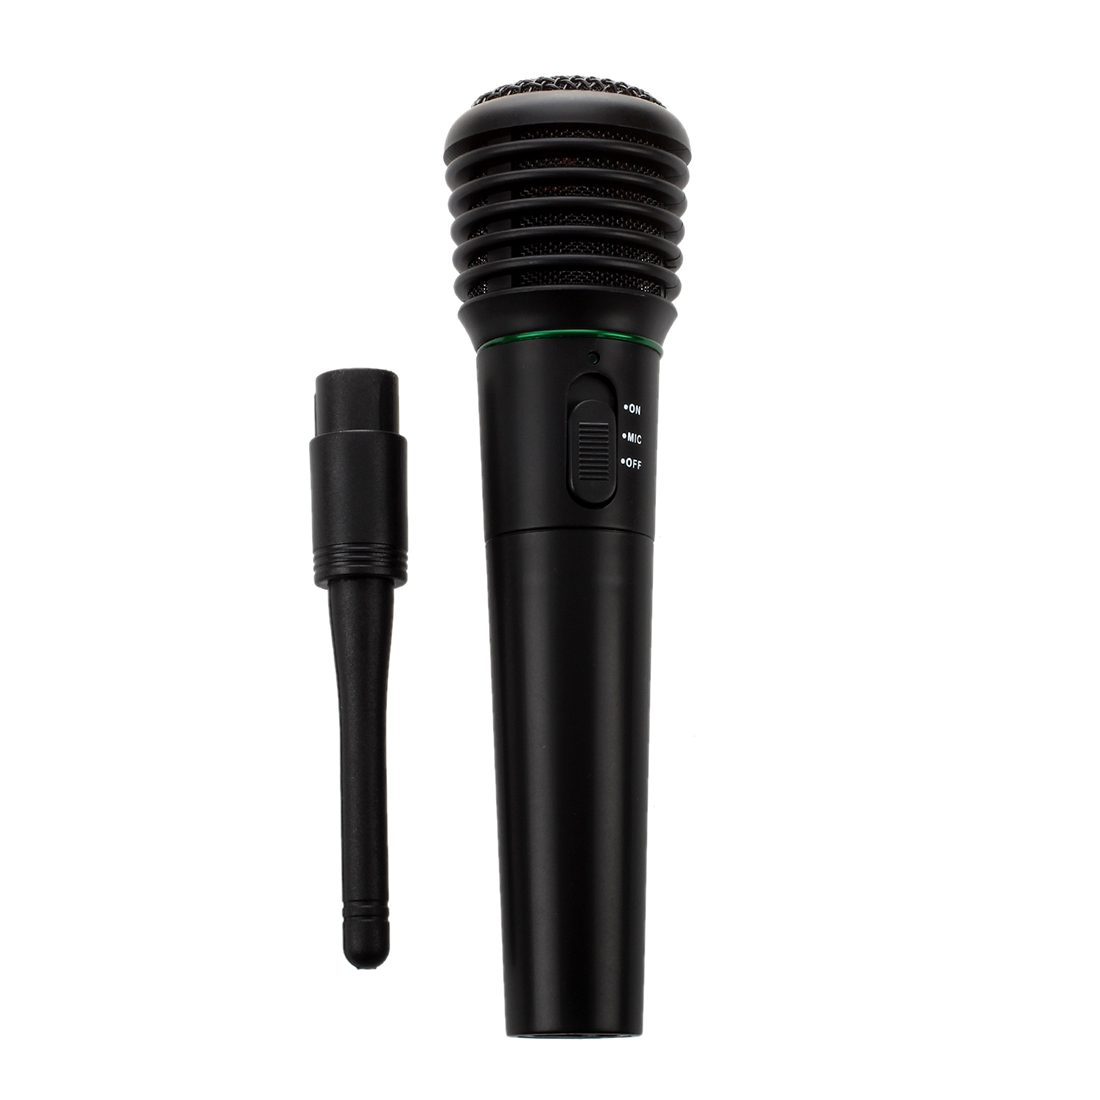 2 in 1 Wired & Wireless Handheld Microphone Wireless